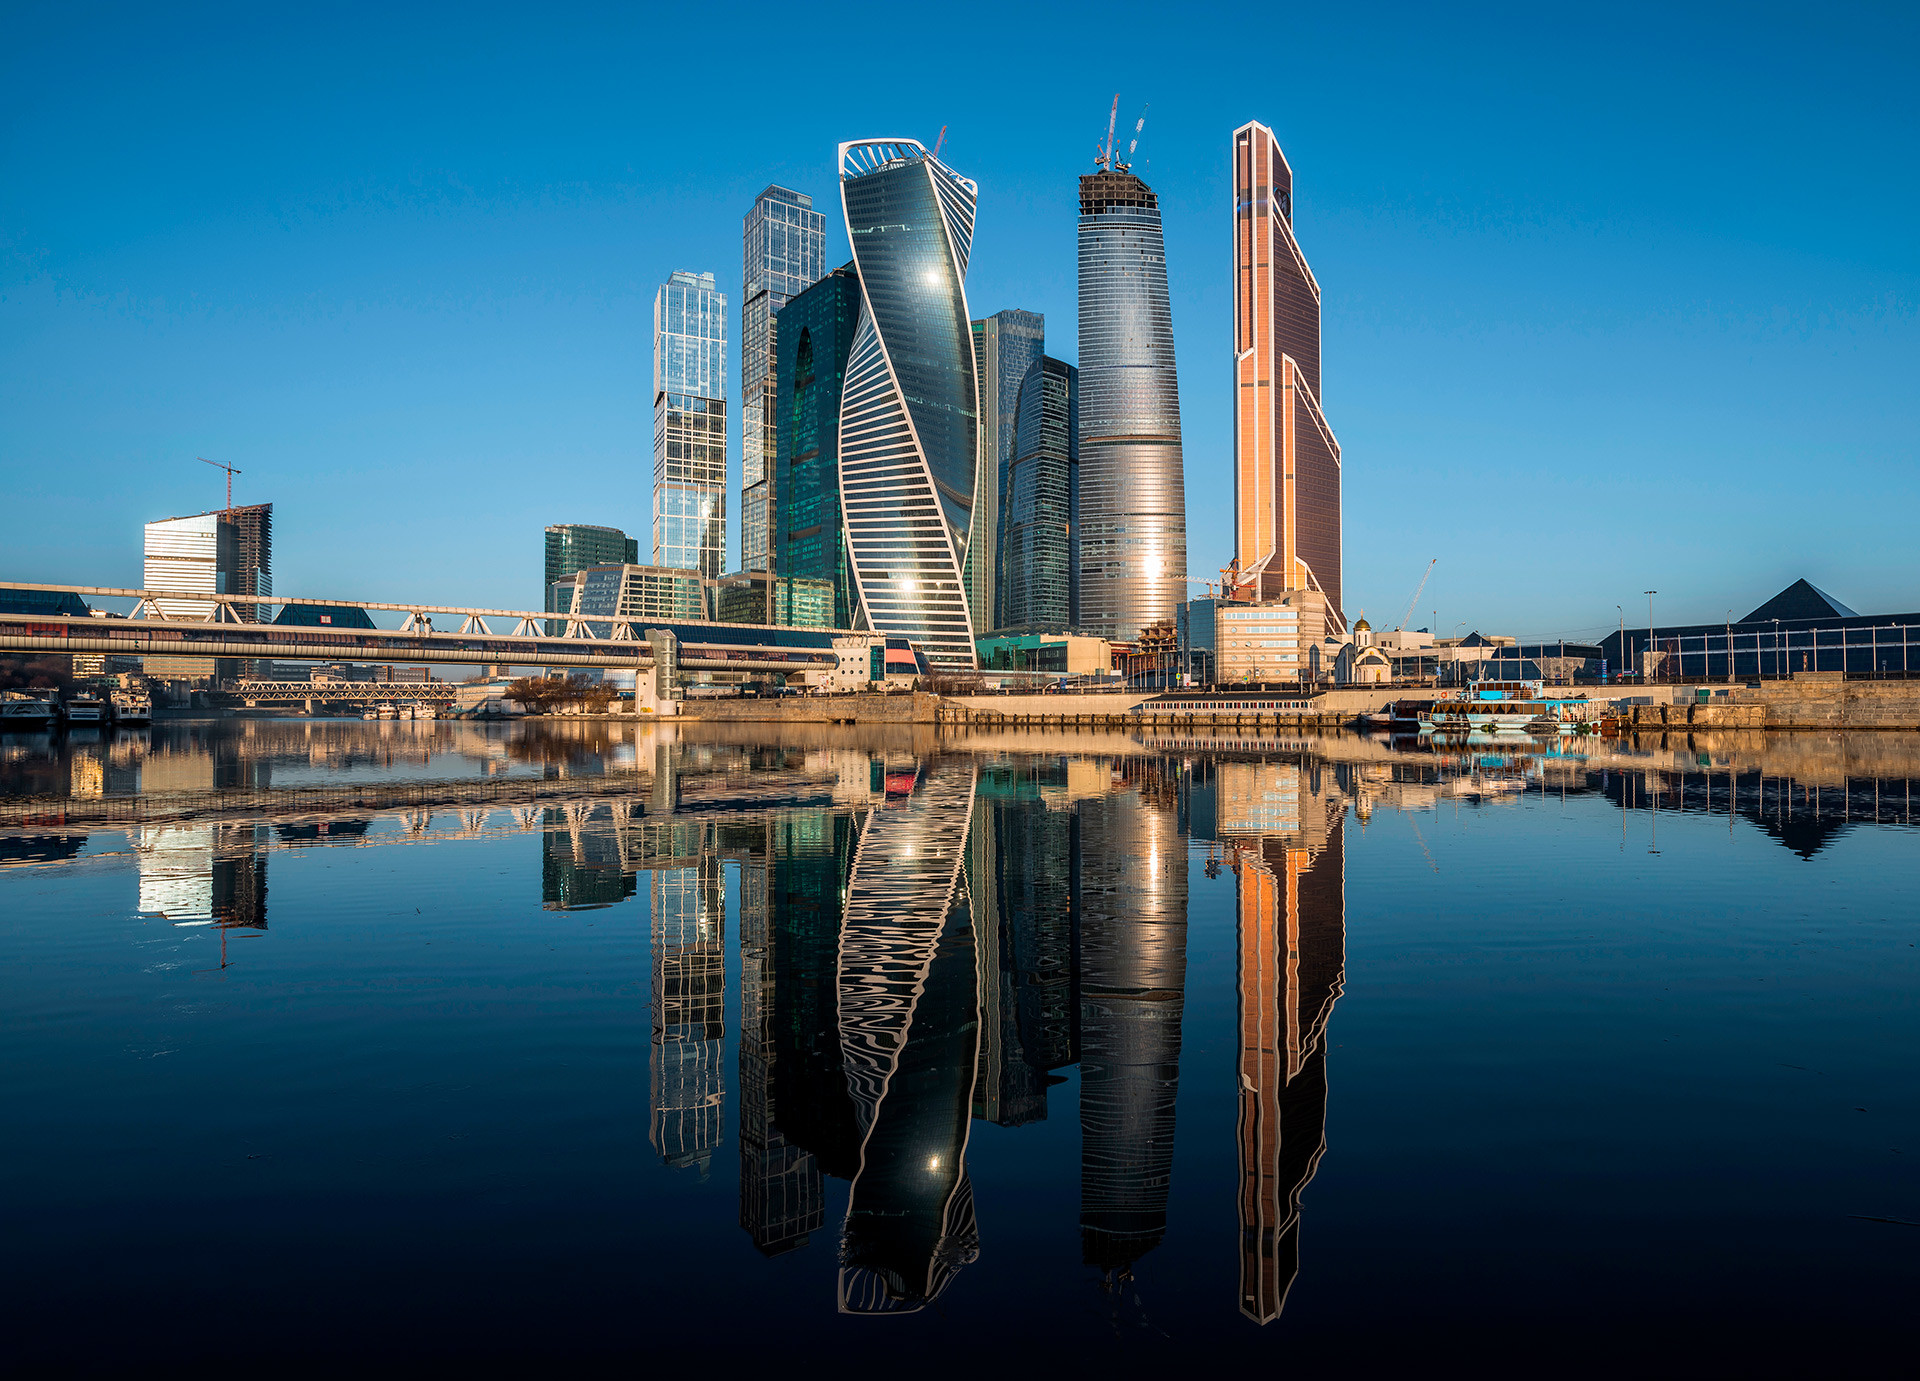 The Moscow International Business Center.